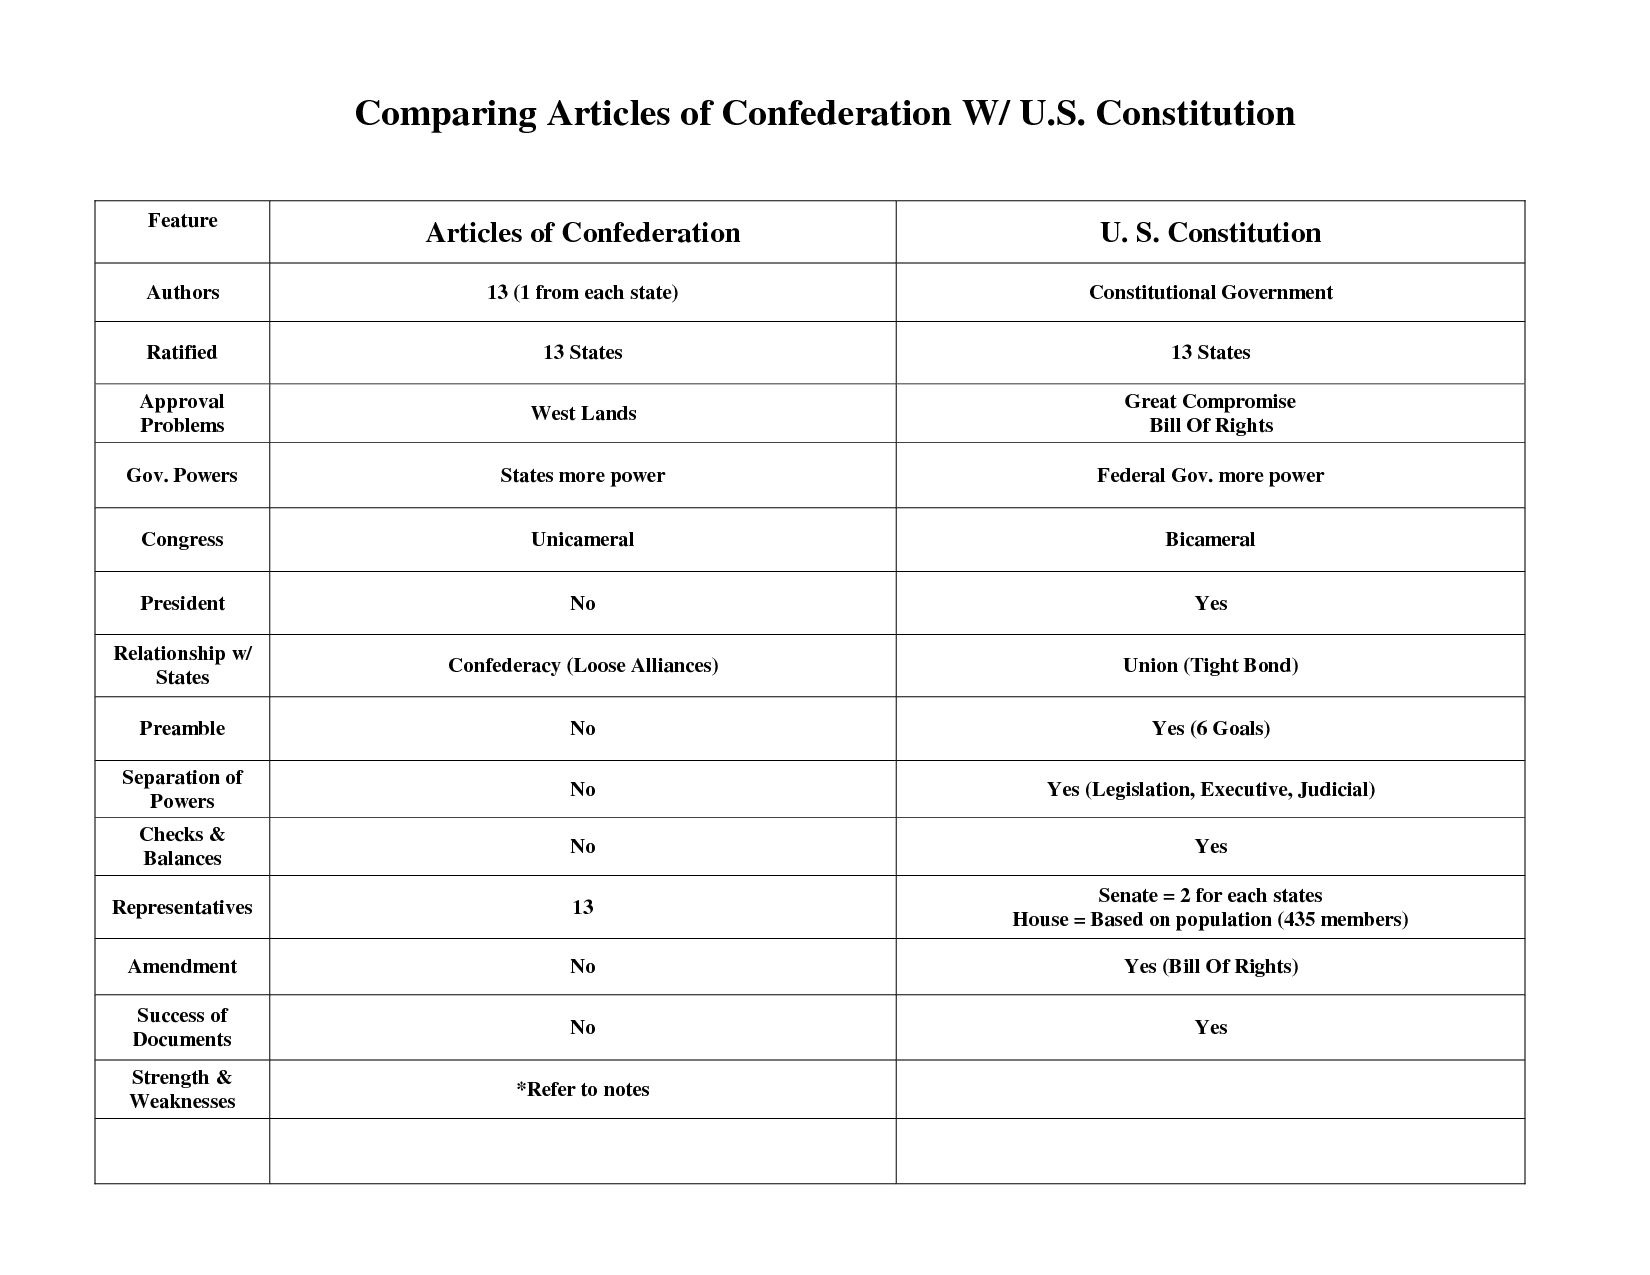 Comparing The Articles Of Confederation And The